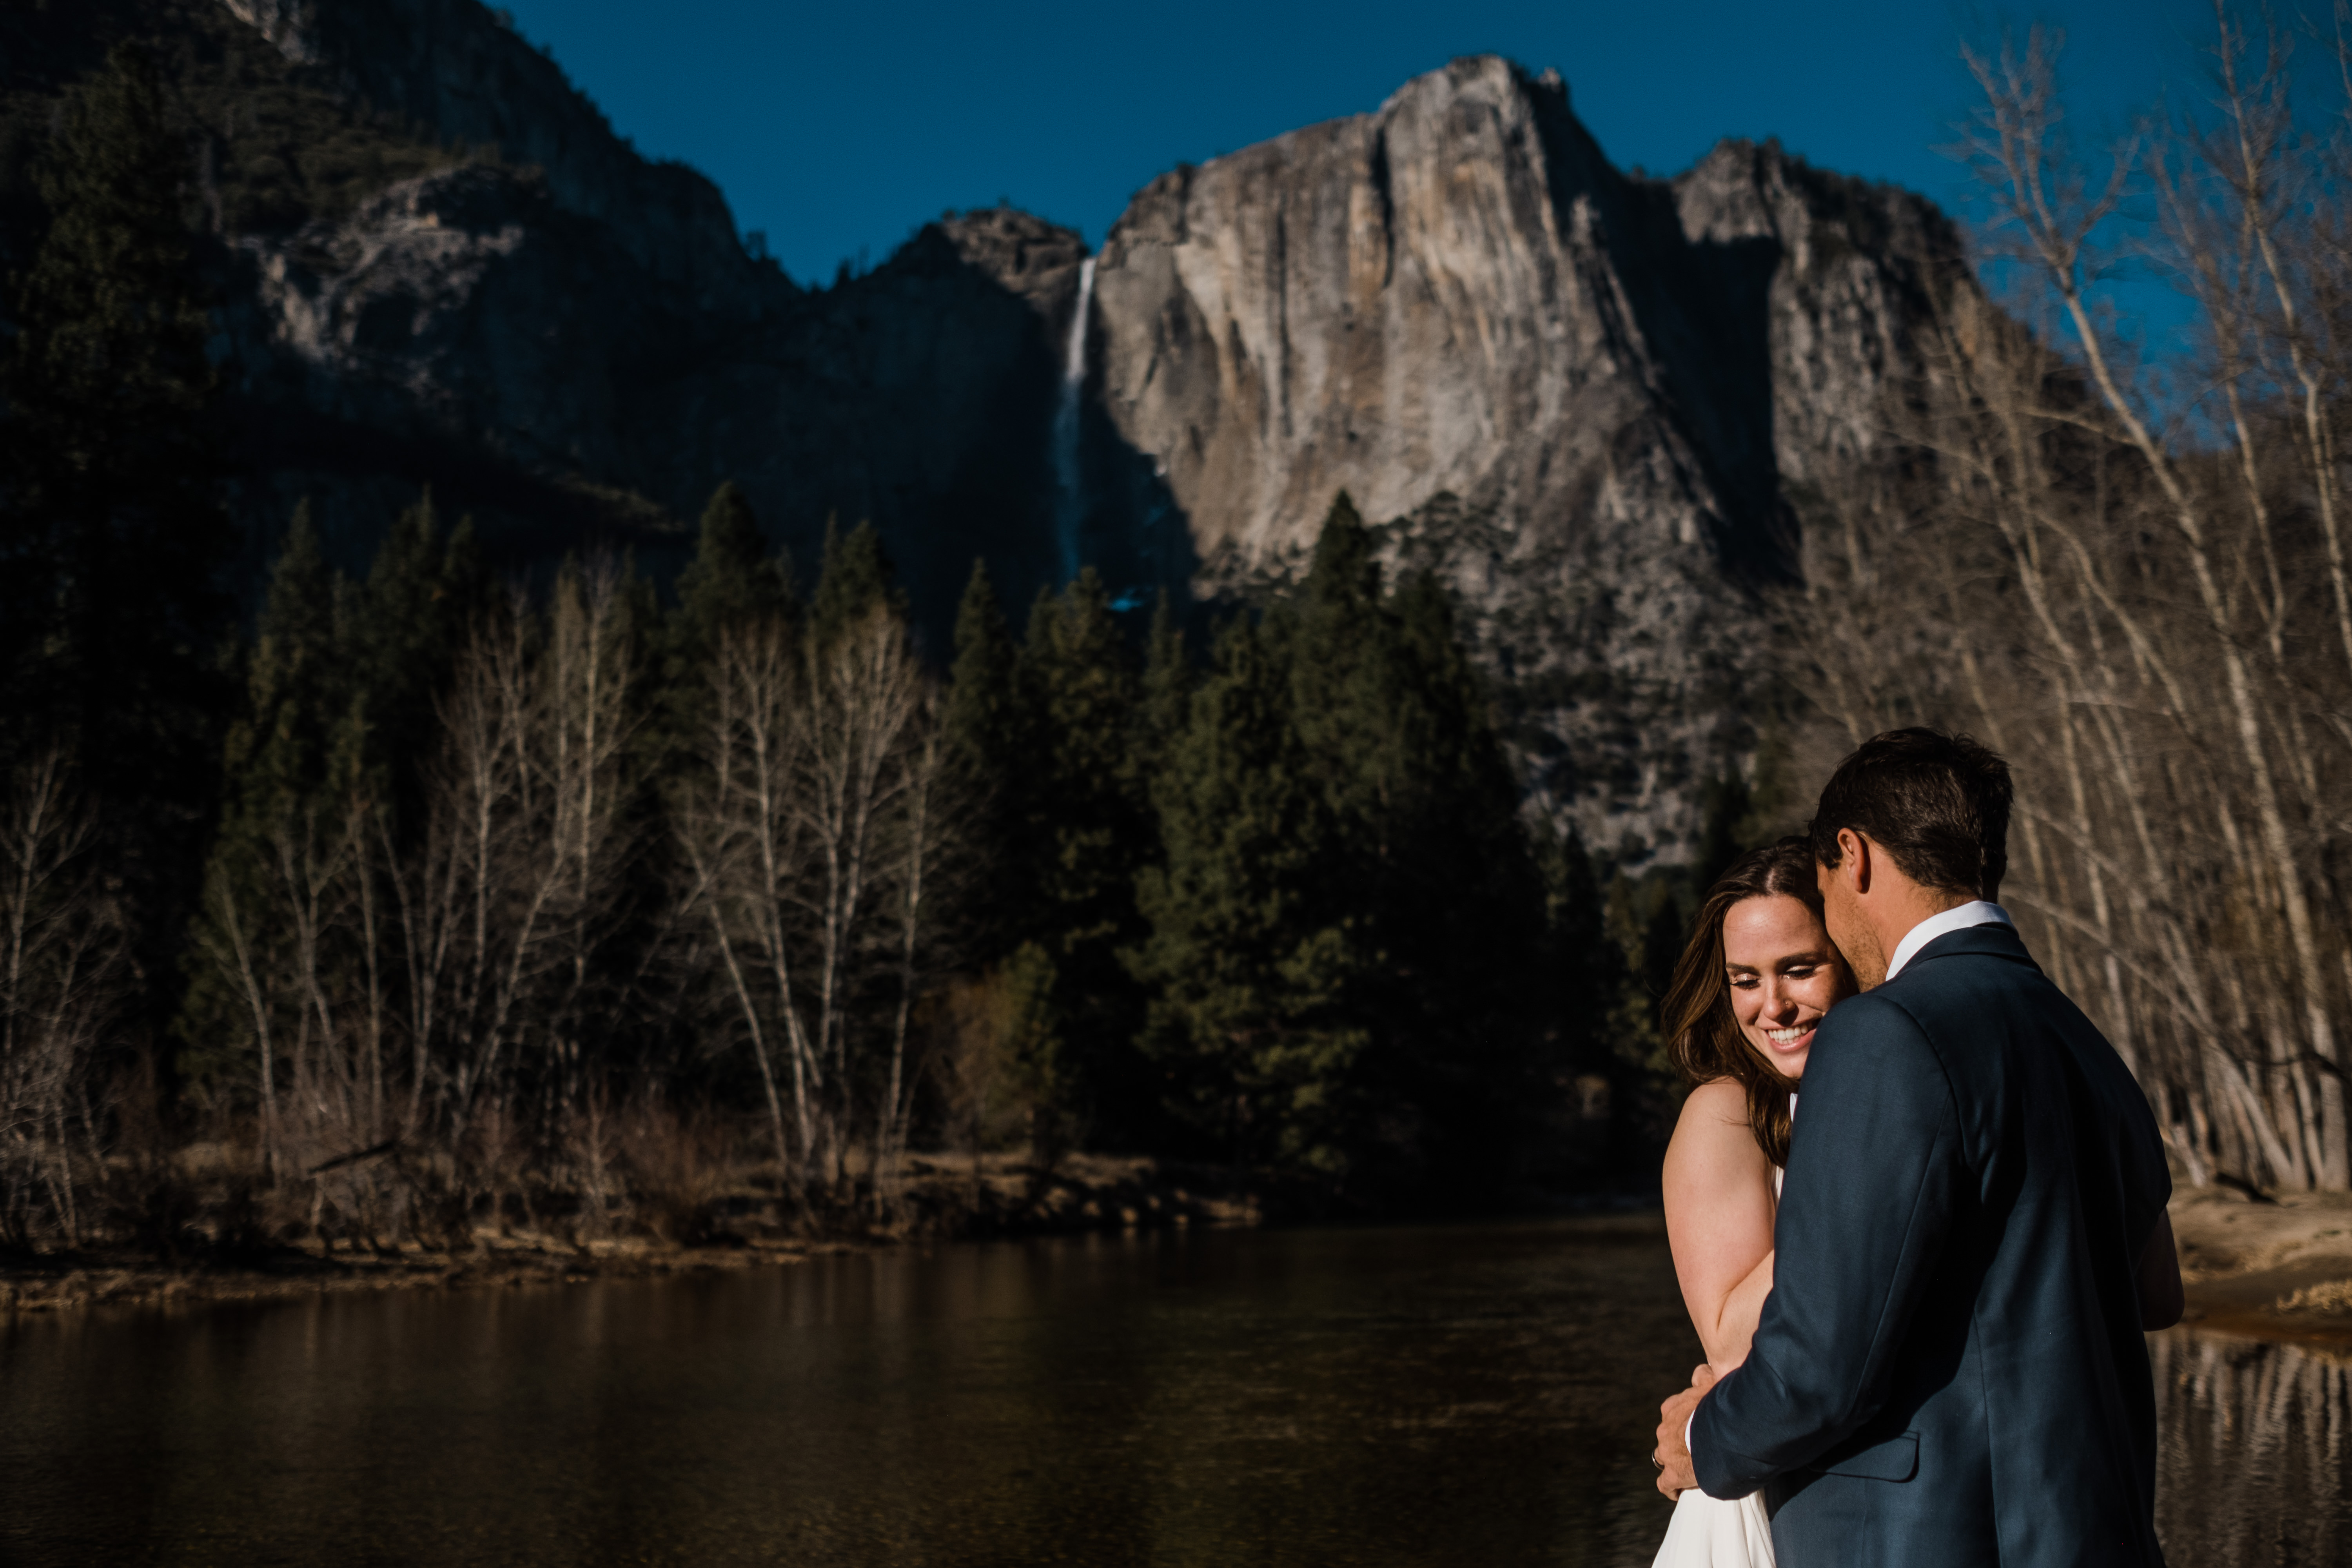 Ryan and Kim snuggle up in front of one of Yosemite's giant towering waterfalls during their adventure elopement session.